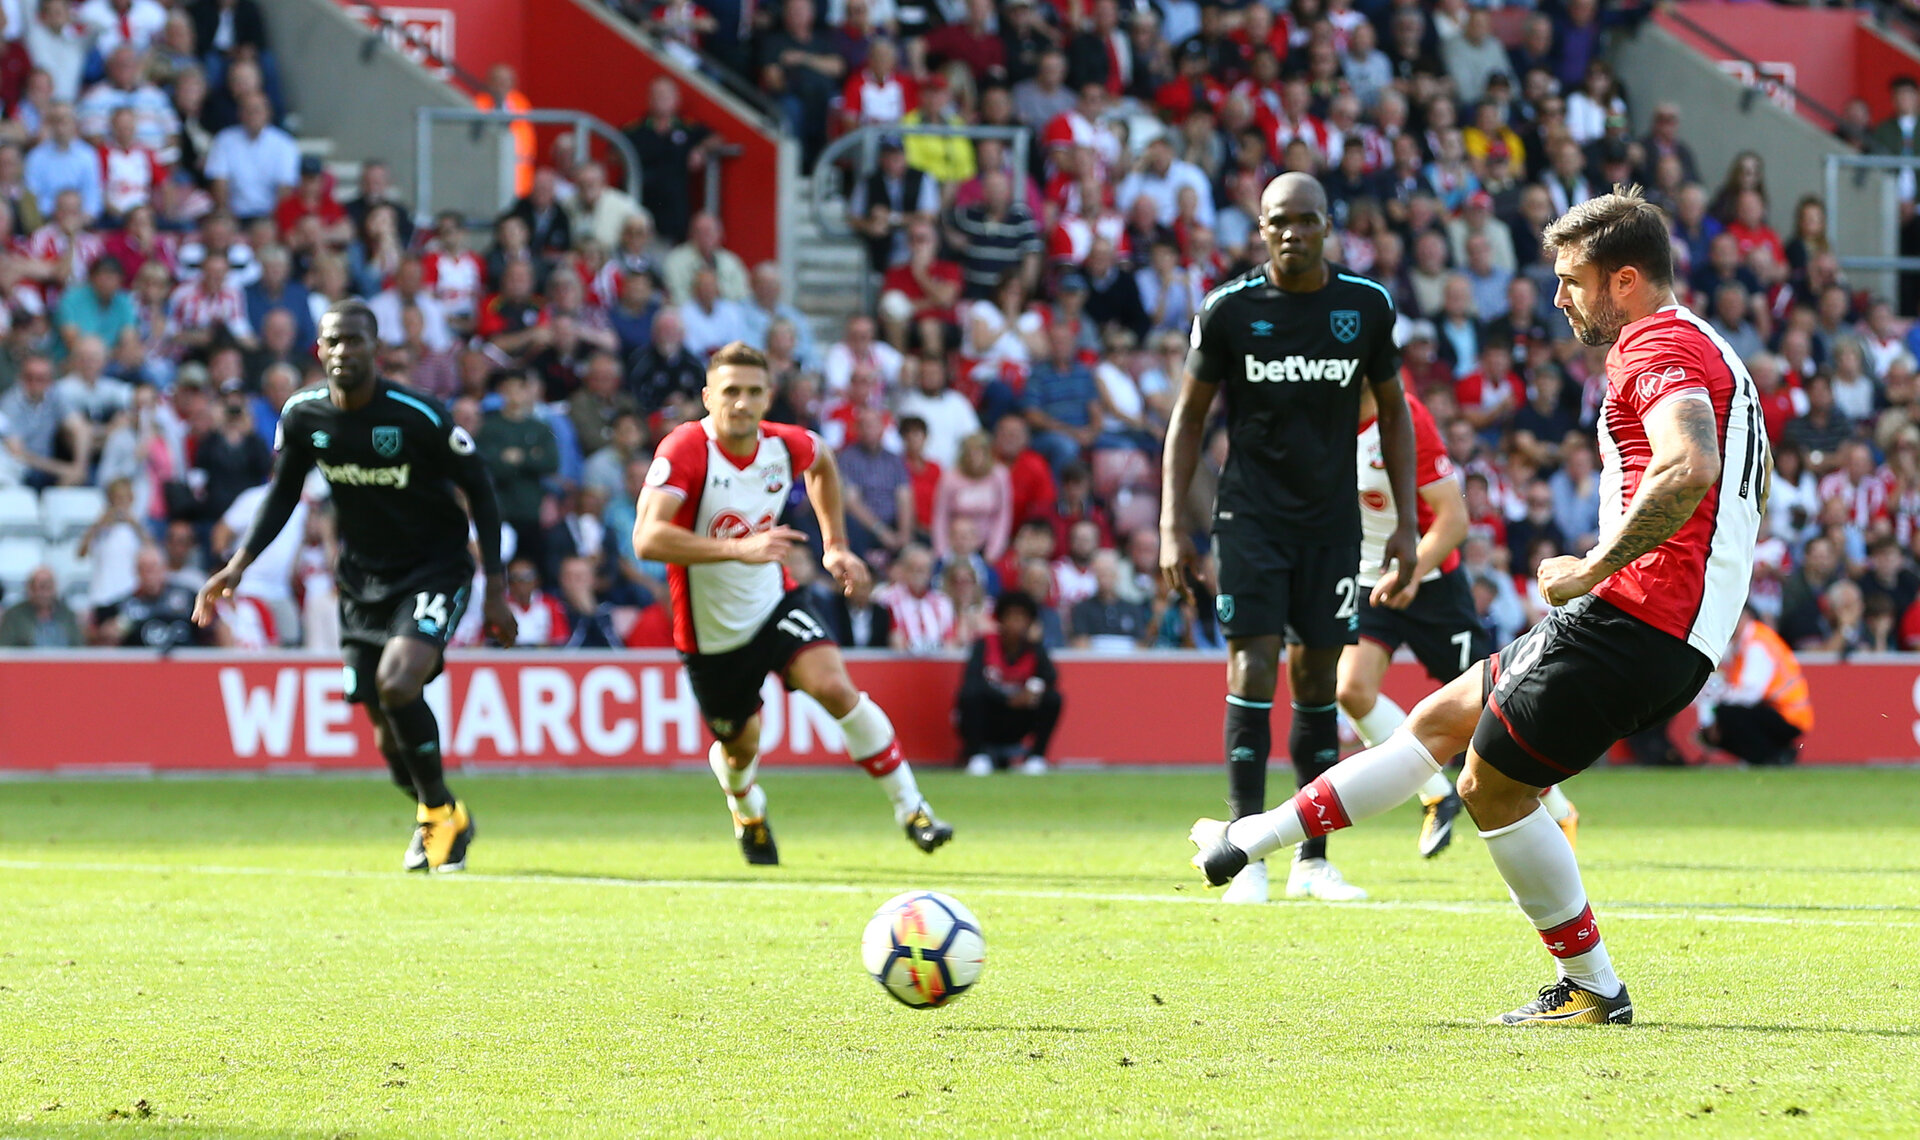 SOUTHAMPTON, ENGLAND - AUGUST 19: Southampton's Charlie Austin scores from the penalty spot in the final minute to win the game during the Premier League match between Southampton and West Ham United at St Mary's Stadium on August 19, 2017 in Southampton, England. (Photo by Matt Watson/Southampton FC via Getty Images)